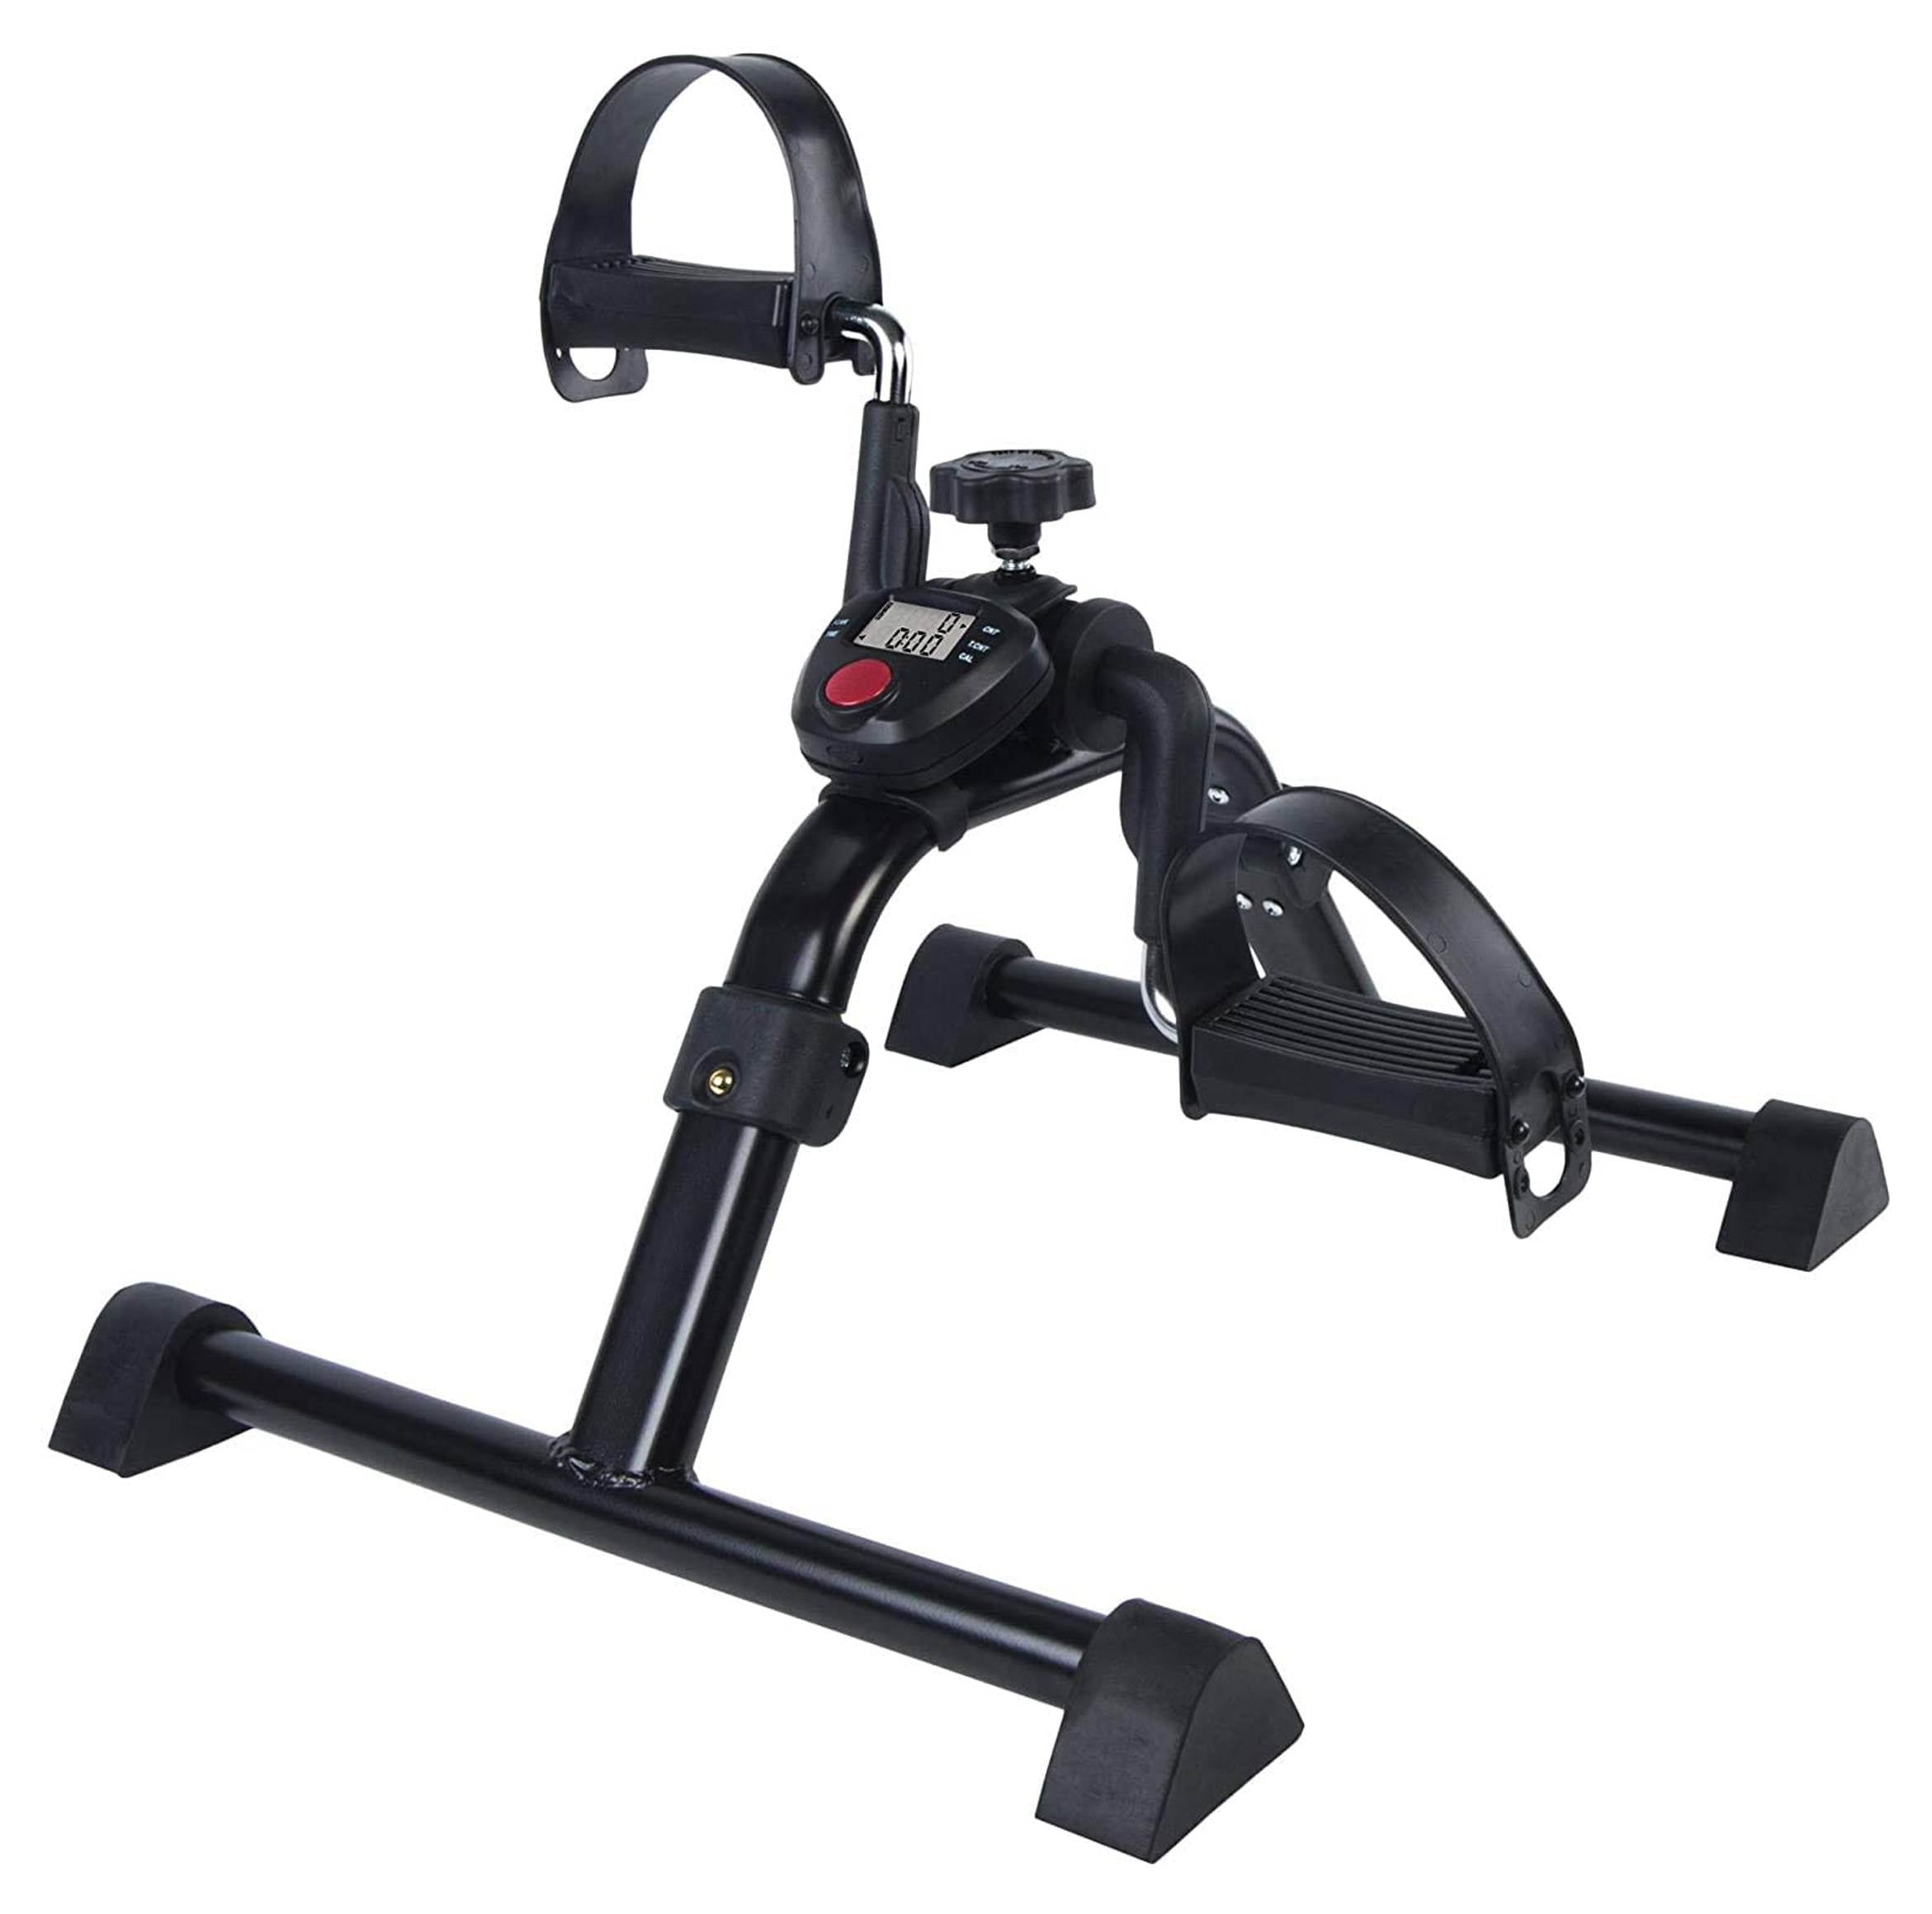 Vaunn Medical Pedal Exerciser with Electronic Display (Fully Assembled Exercise Peddler, no tools required)